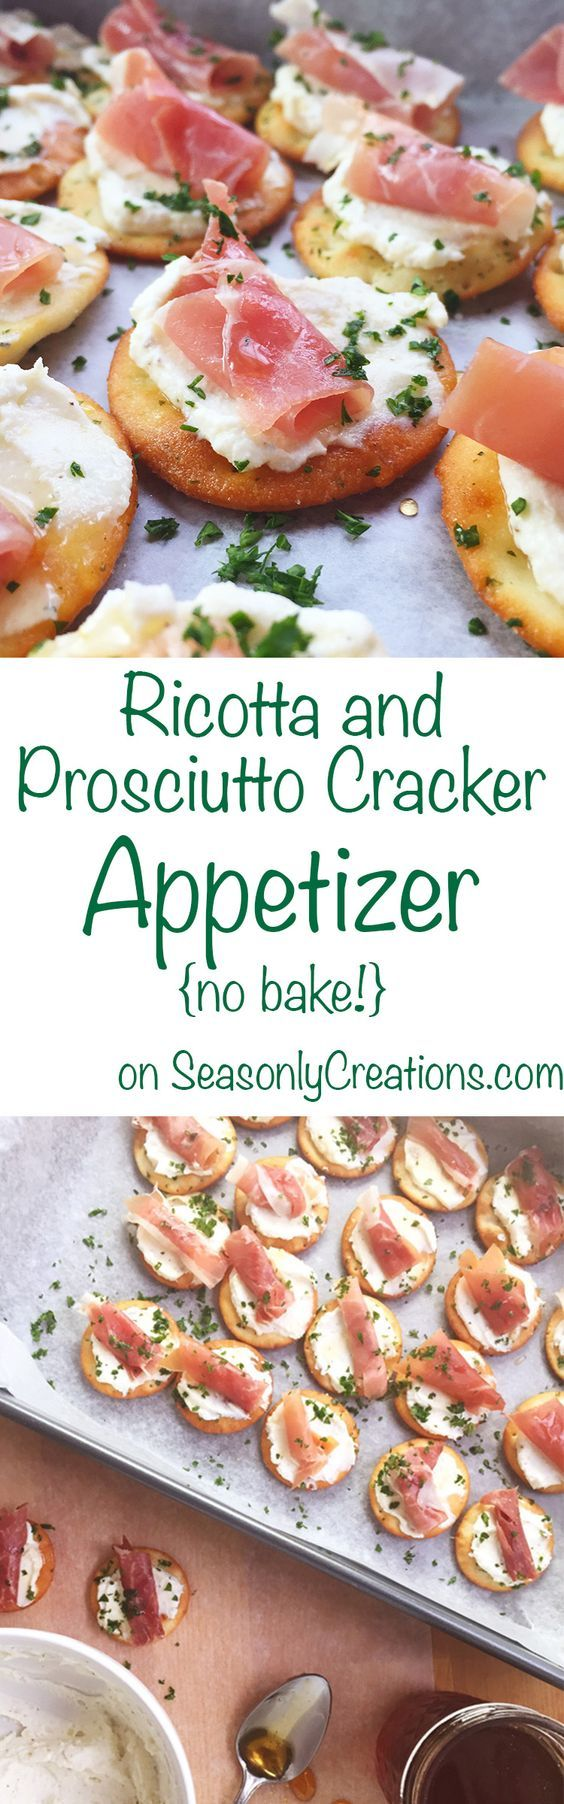 Ricotta and Prosciutto Cracker Appetizer recipe, perfect for your next holiday party! This is a no-bake recipe that costs under $10 and takes less than 20 minutes to make. Wow holiday party goers with creamy ricotta, prosciutto and a light honey drizzle over every cracker. Click through for the full recipe! | SeasonlyCreations... | @SeasonlyBlog